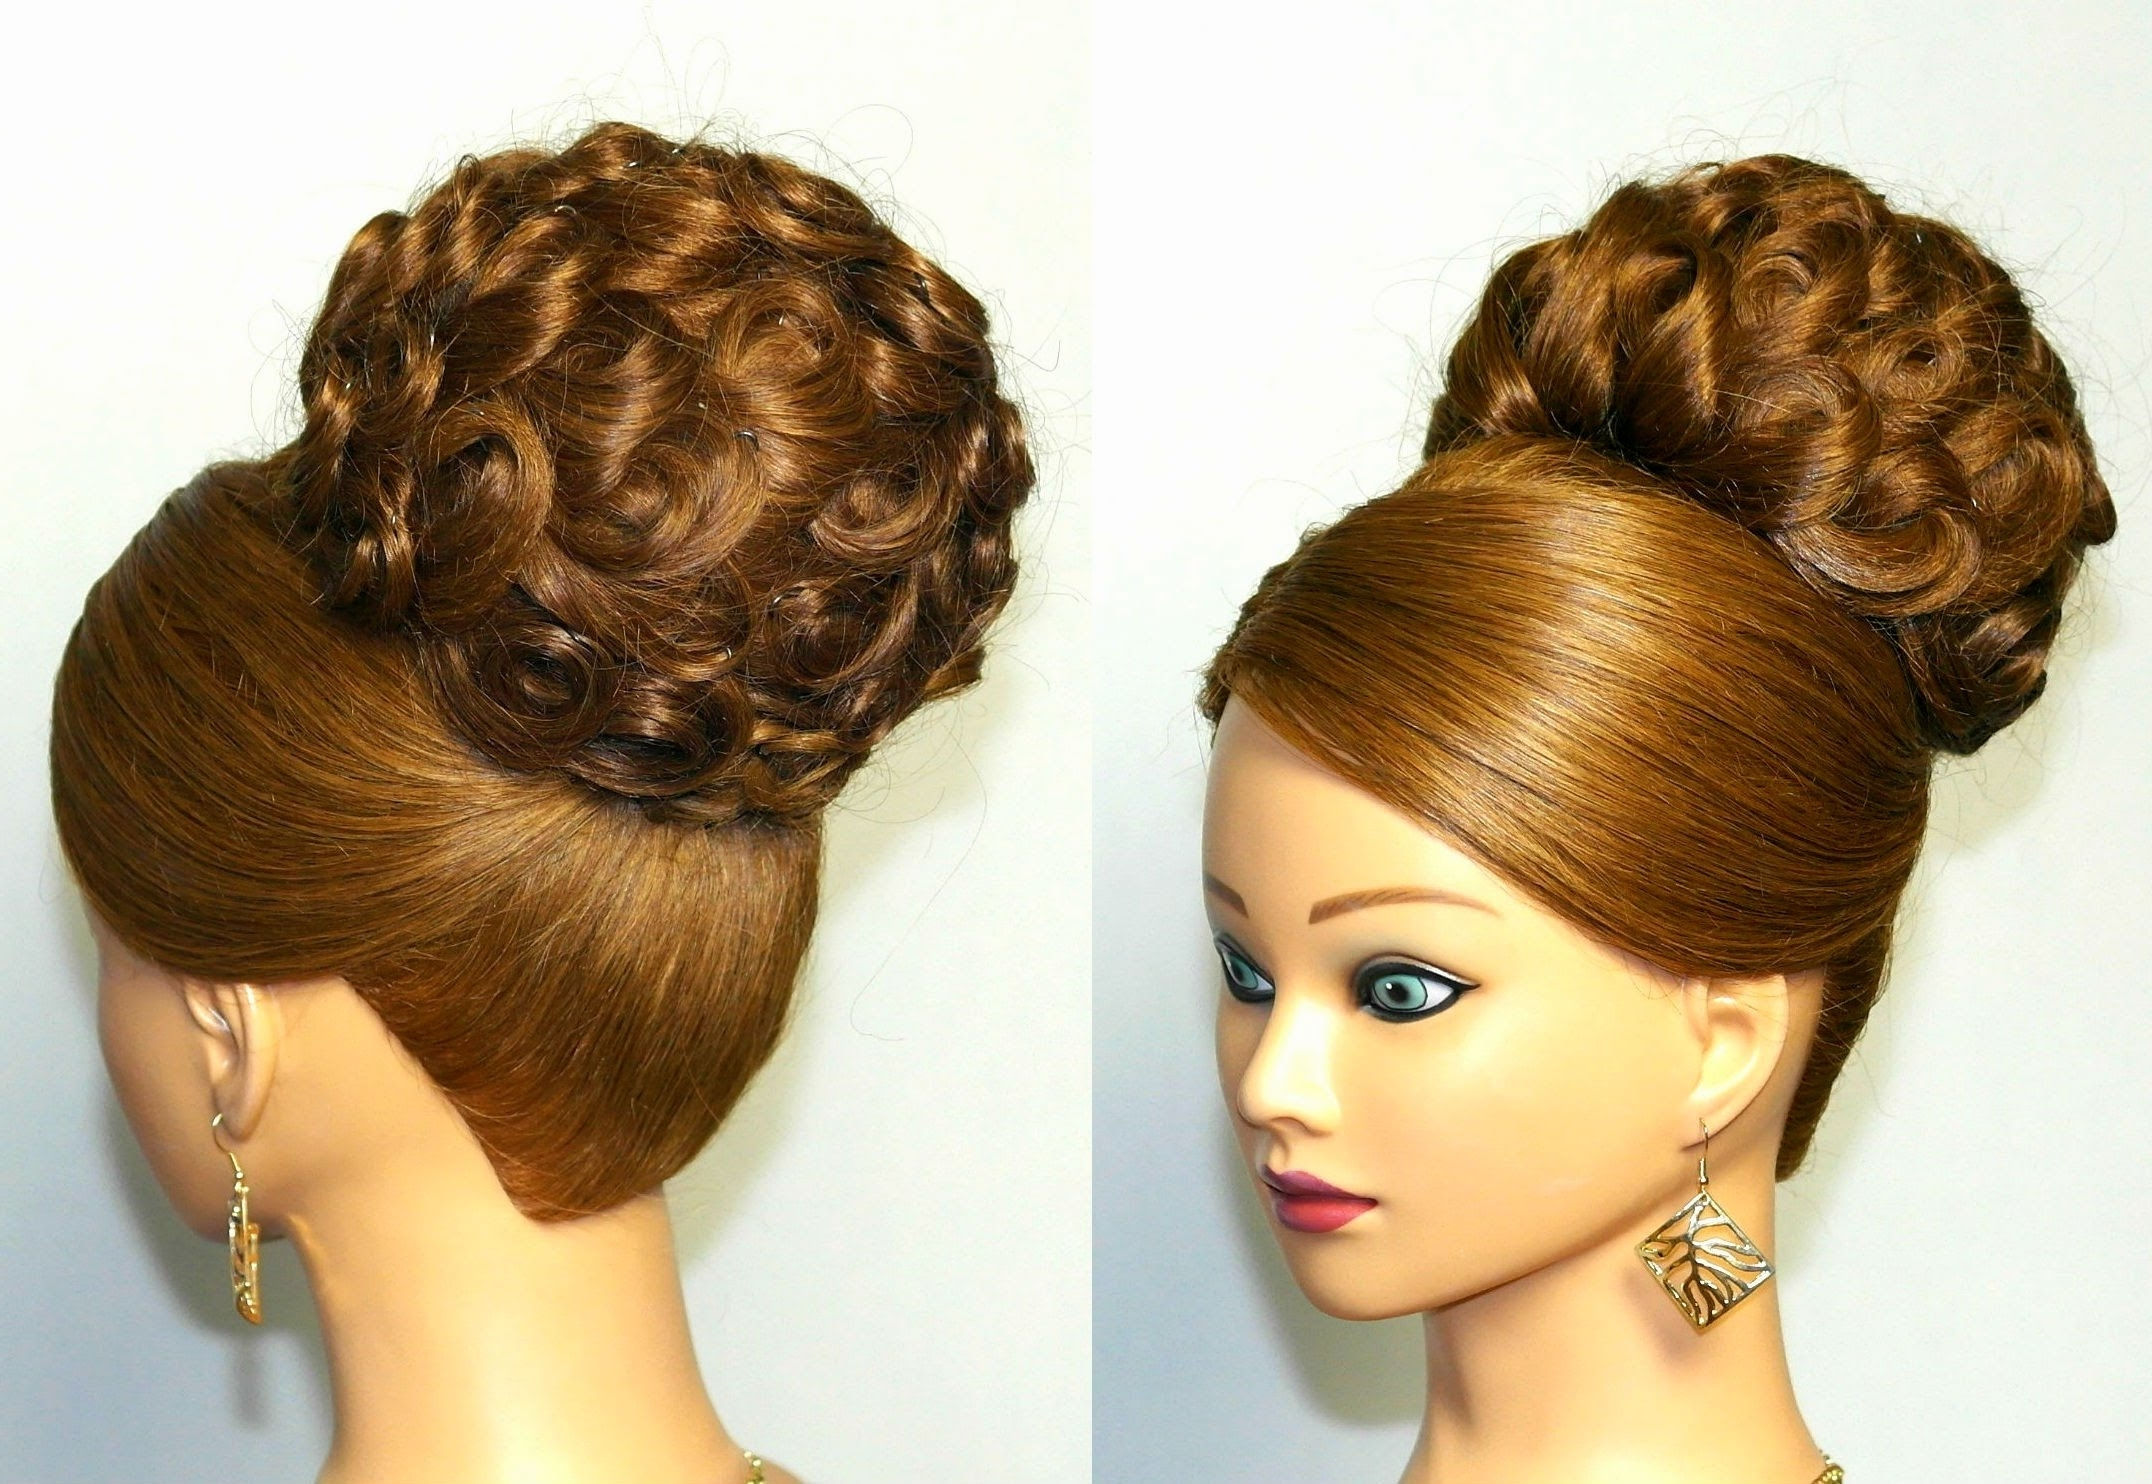 Elegant Hairstyles For Long Hair Wedding – Hairstyle For Women & Man Inside Most Popular Wedding Evening Hairstyles (Gallery 13 of 15)